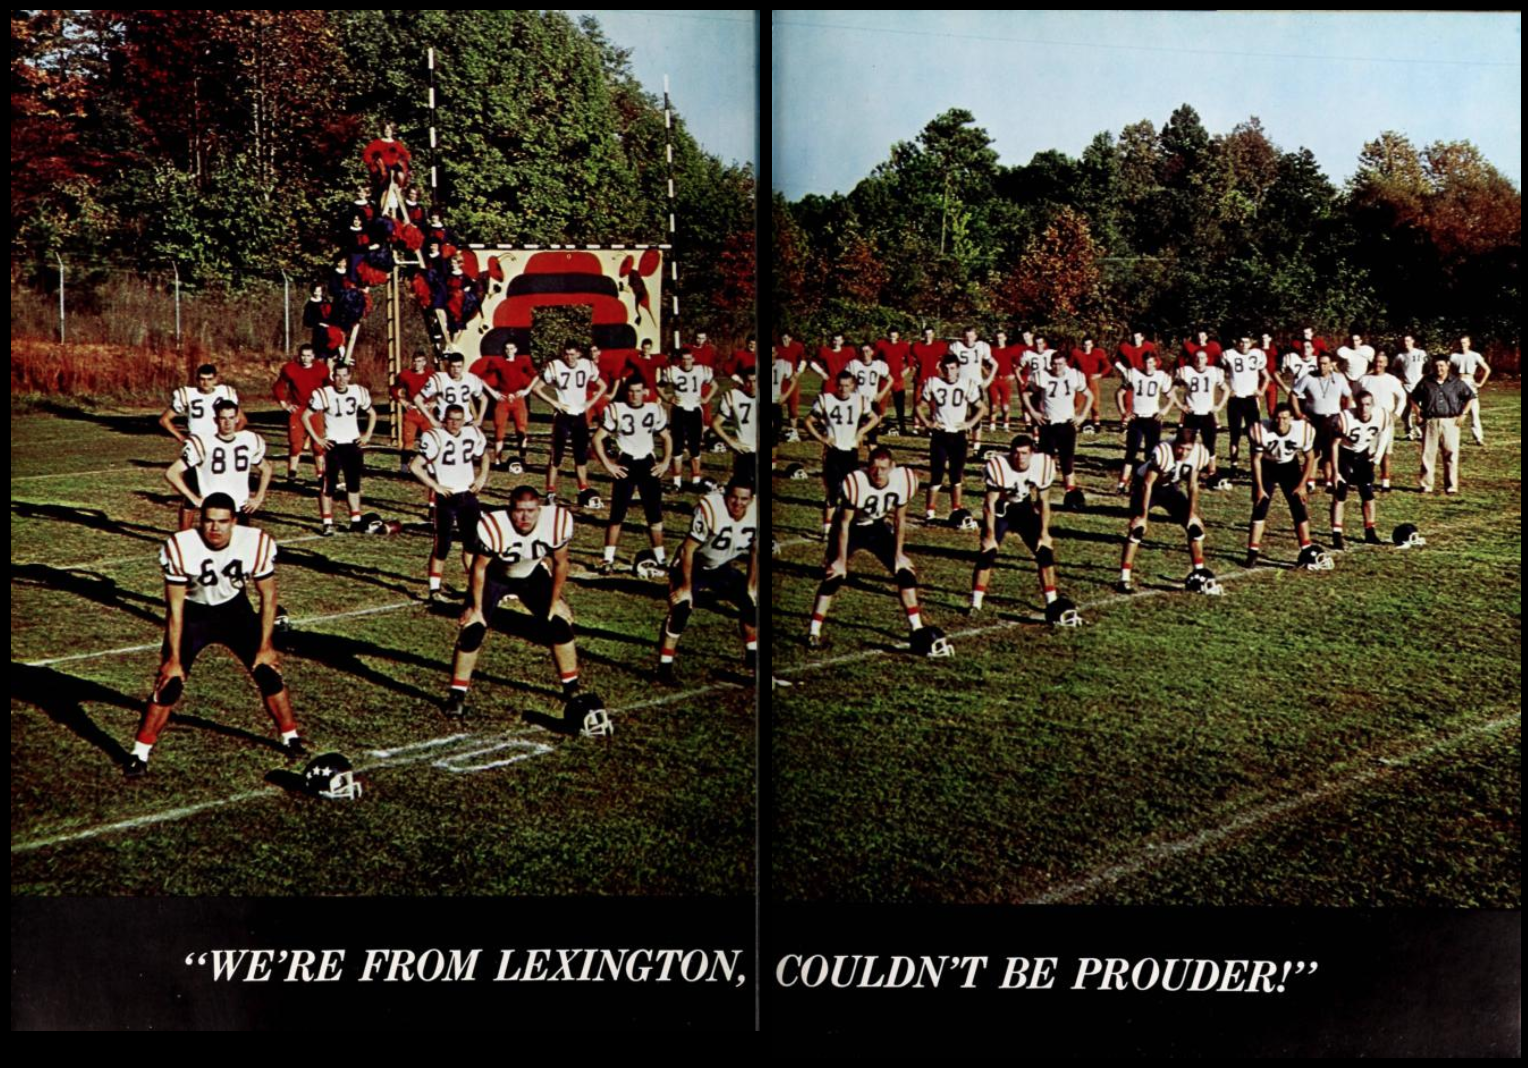 "Two-page spread from the 1964 Lexington Senior High School yearbook The Lexicon. A single color photo of the football team and cheerleaders takes up the two pages; the text beneath the photo reads ""We're from Lexington, couldn't be prouder!""."